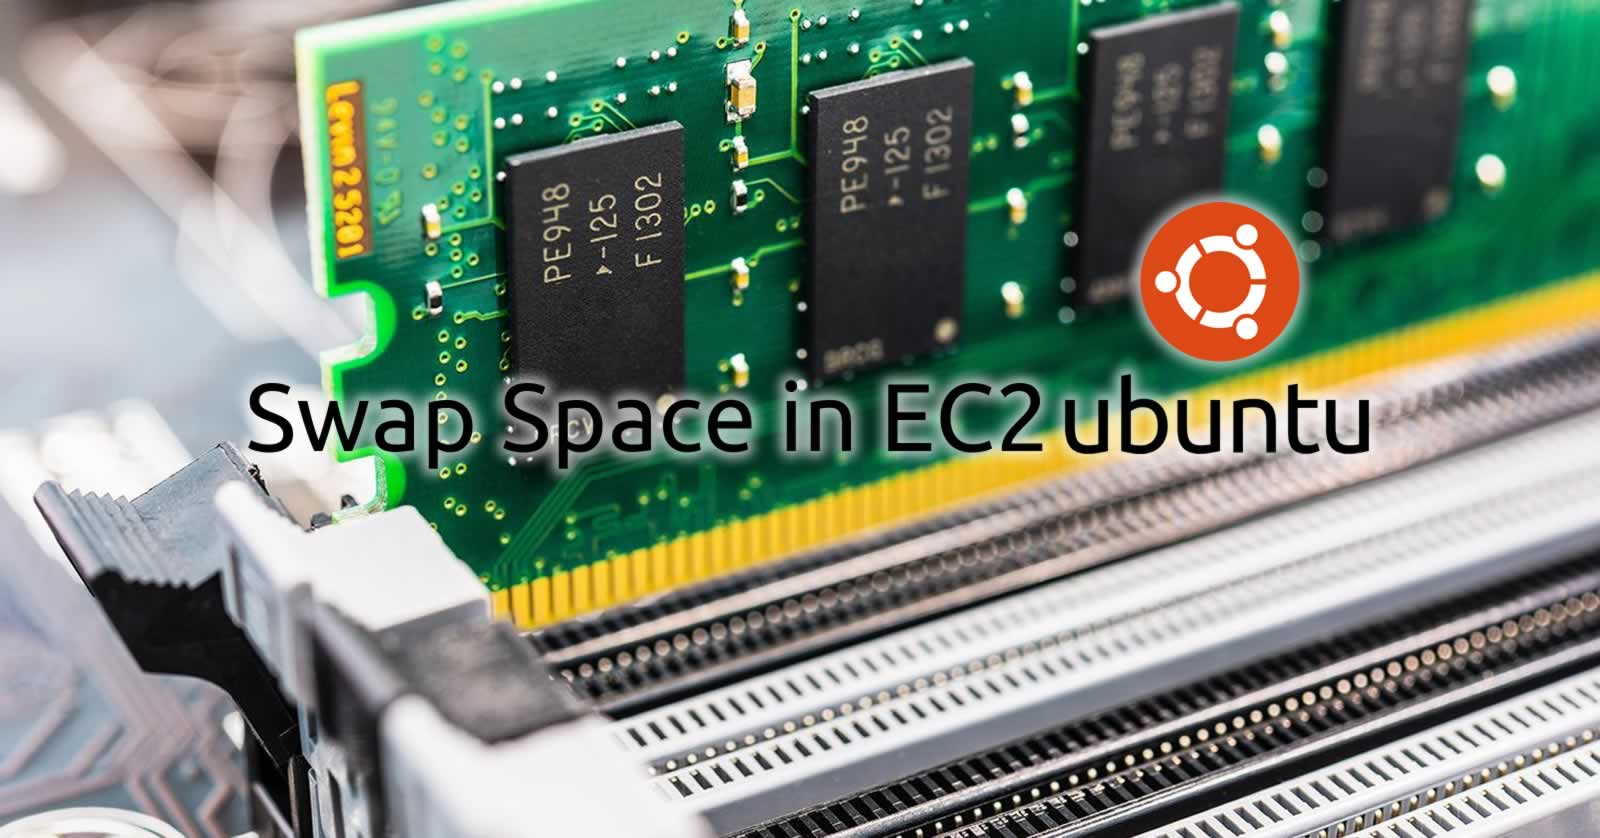 Swap Space in EC2 Ubuntu